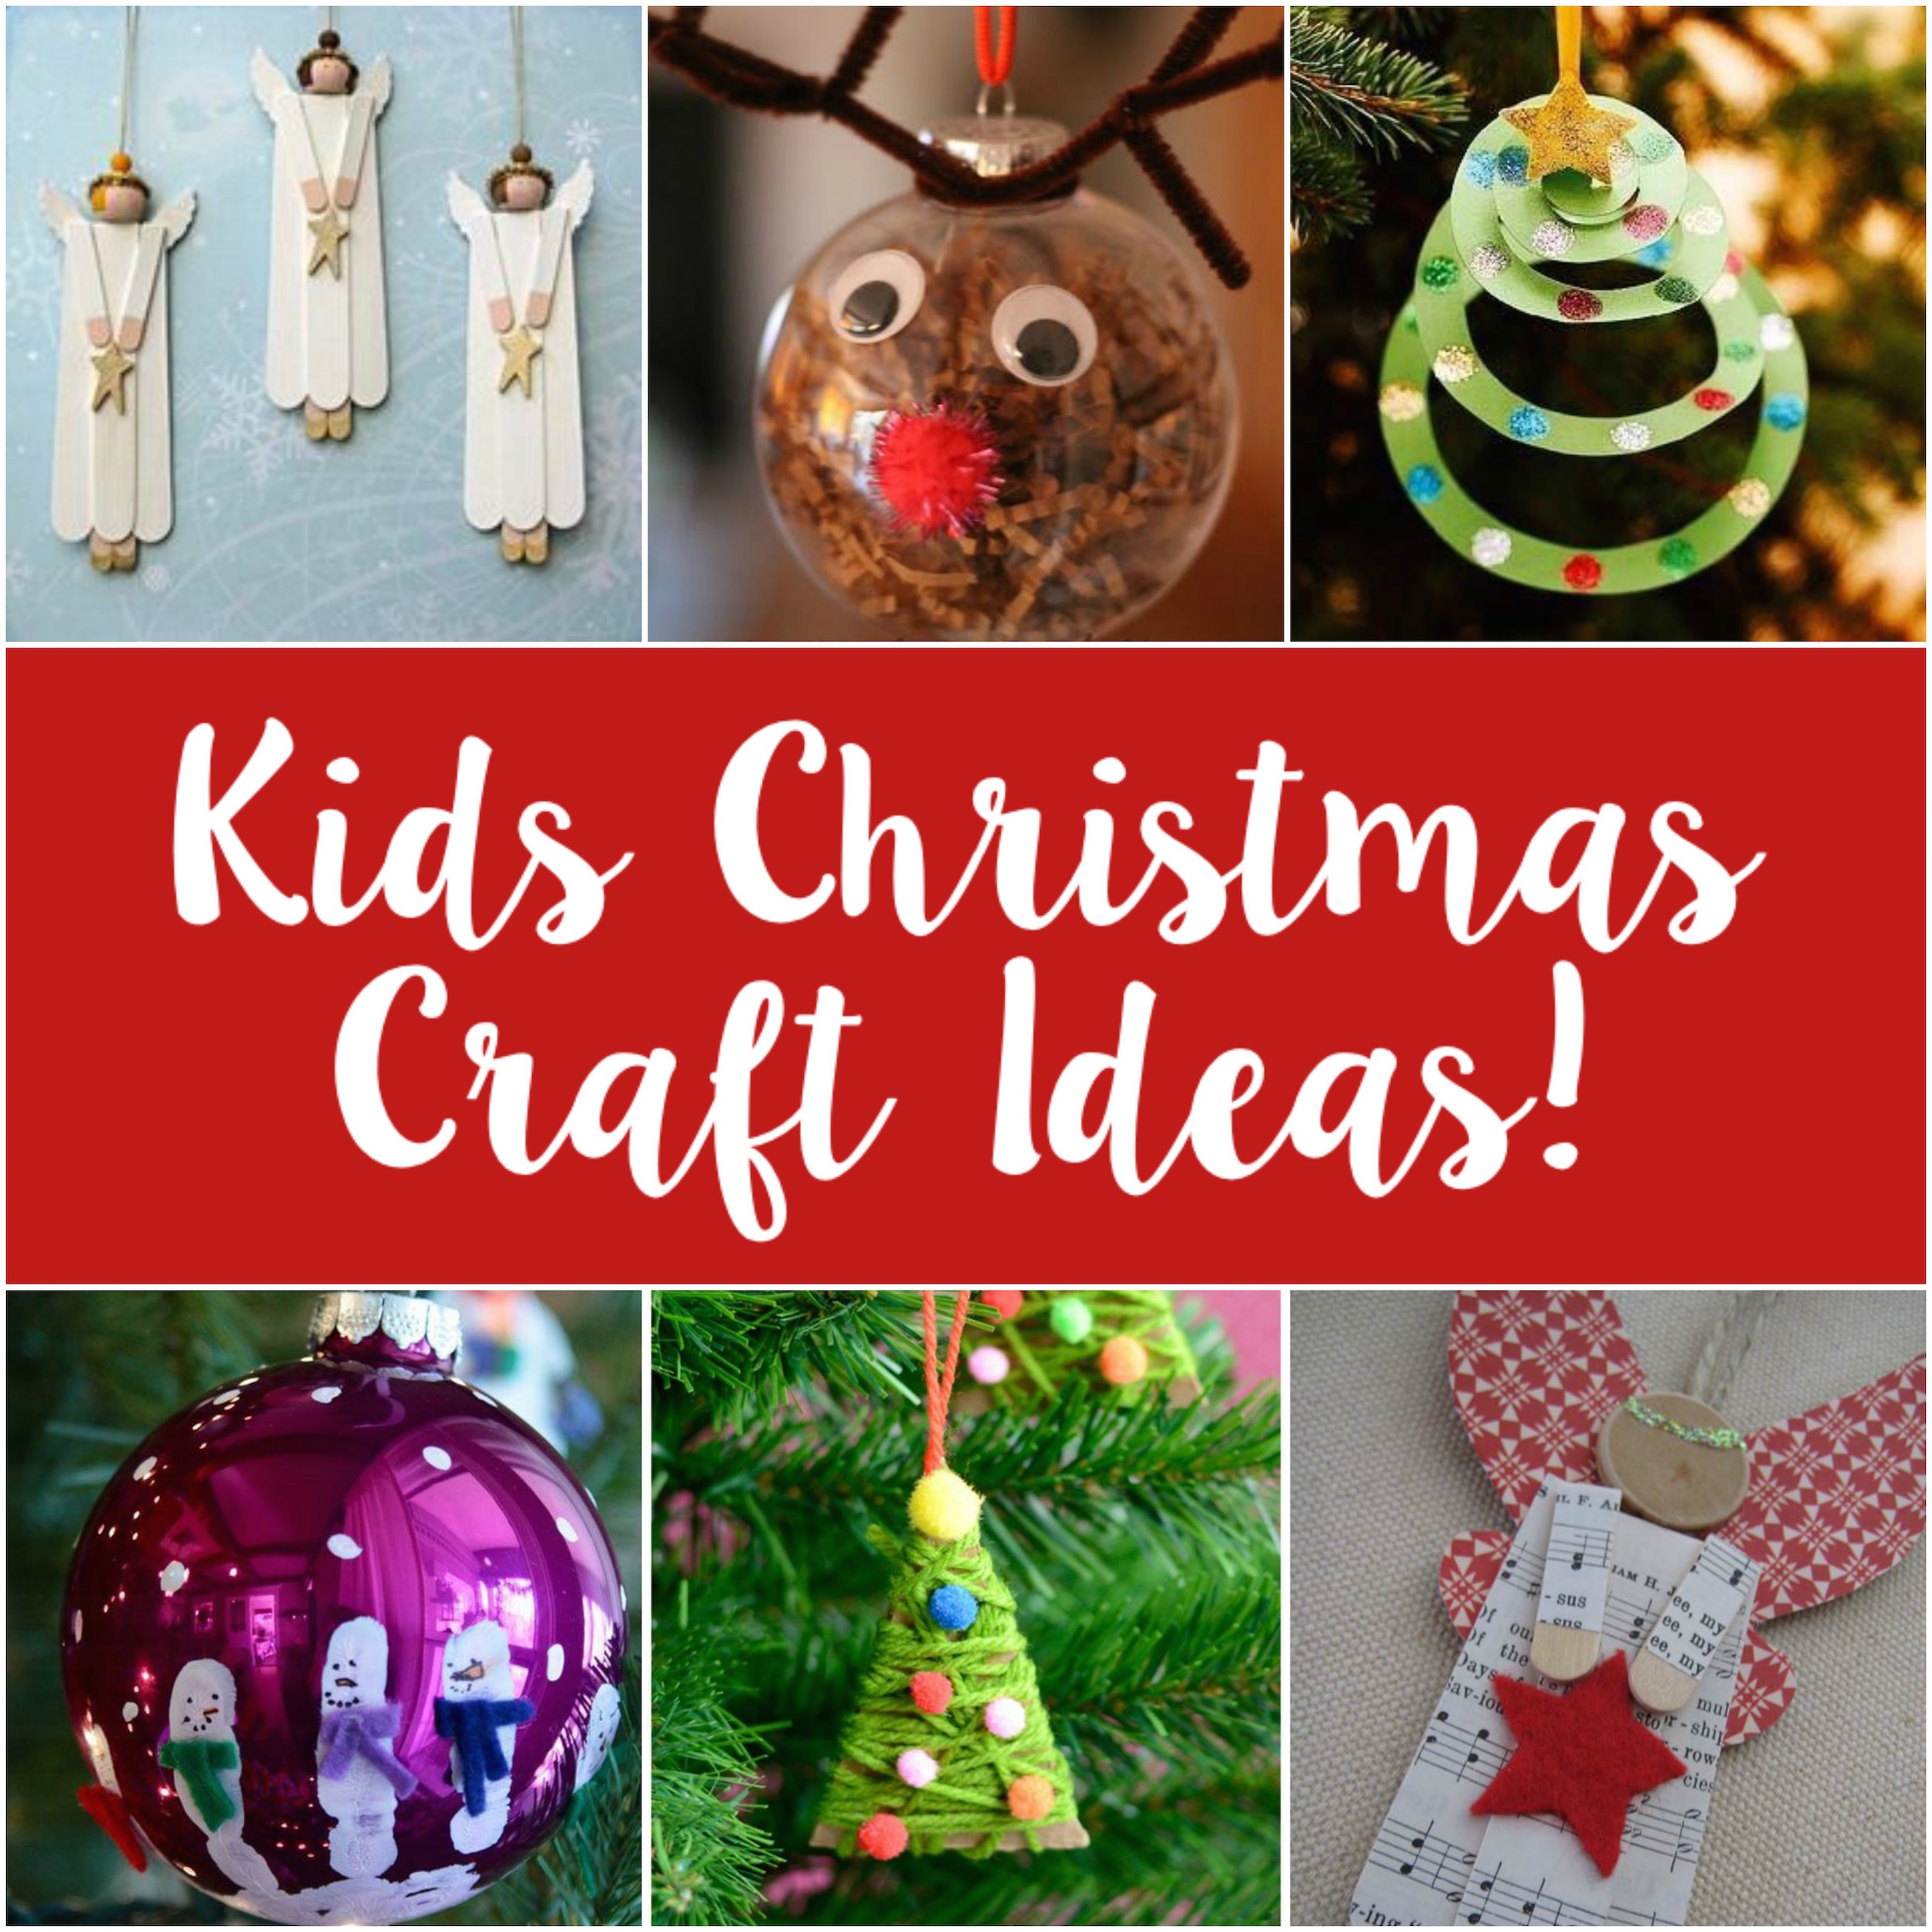 Our top 5 ideas for creating with kids this Christmas!